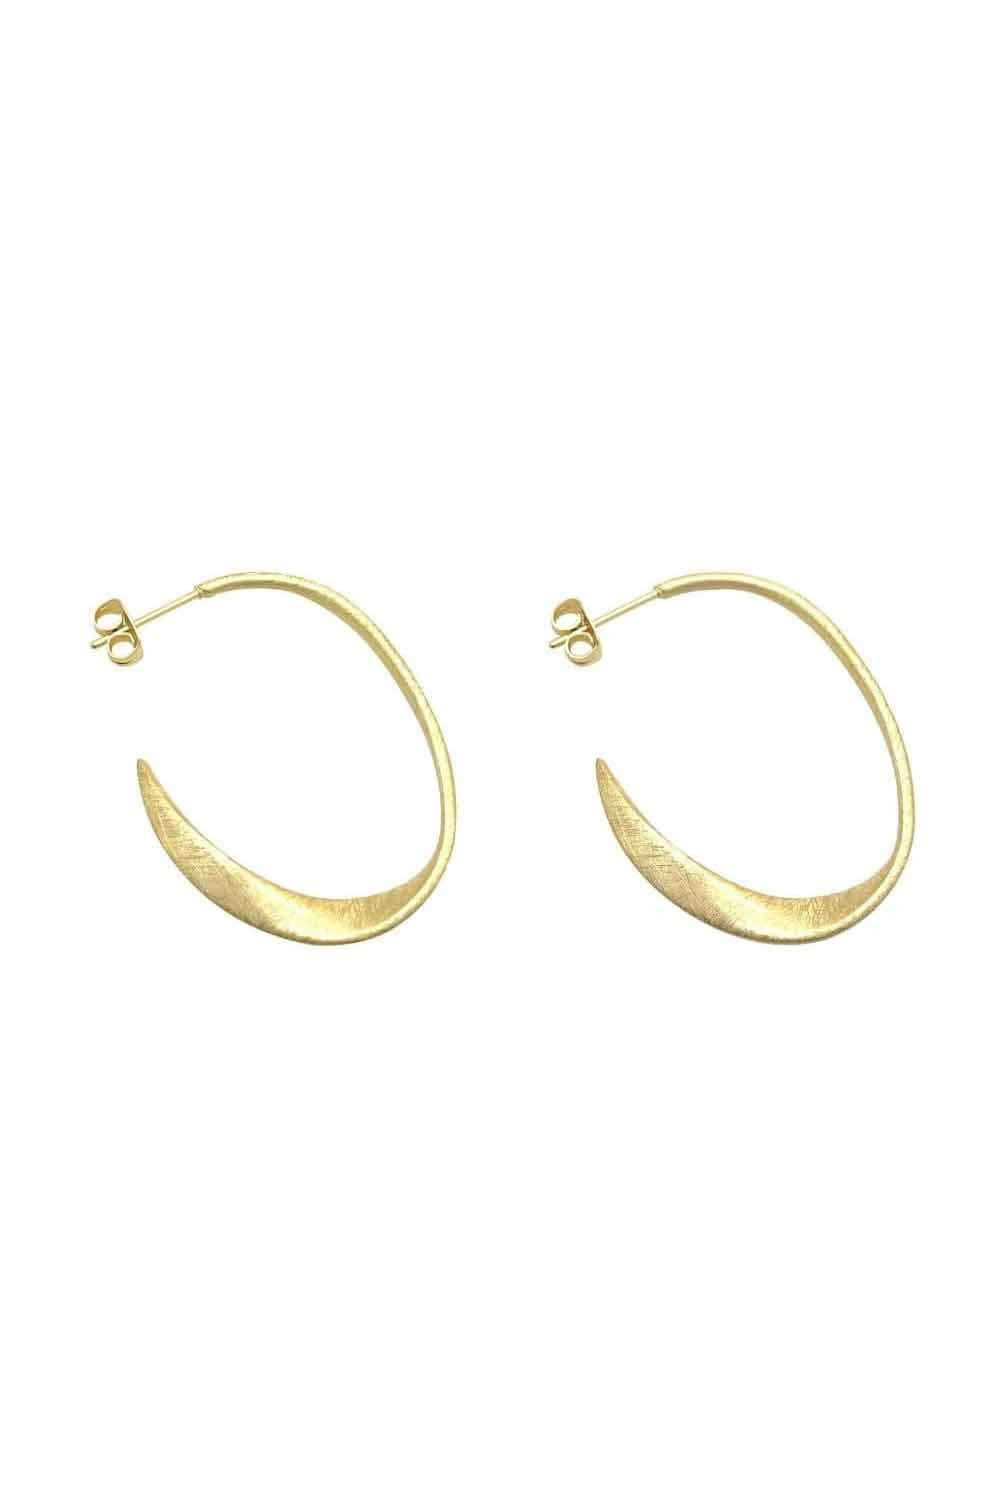 Bonito Jewelry ~ Miro Hoops in Gold